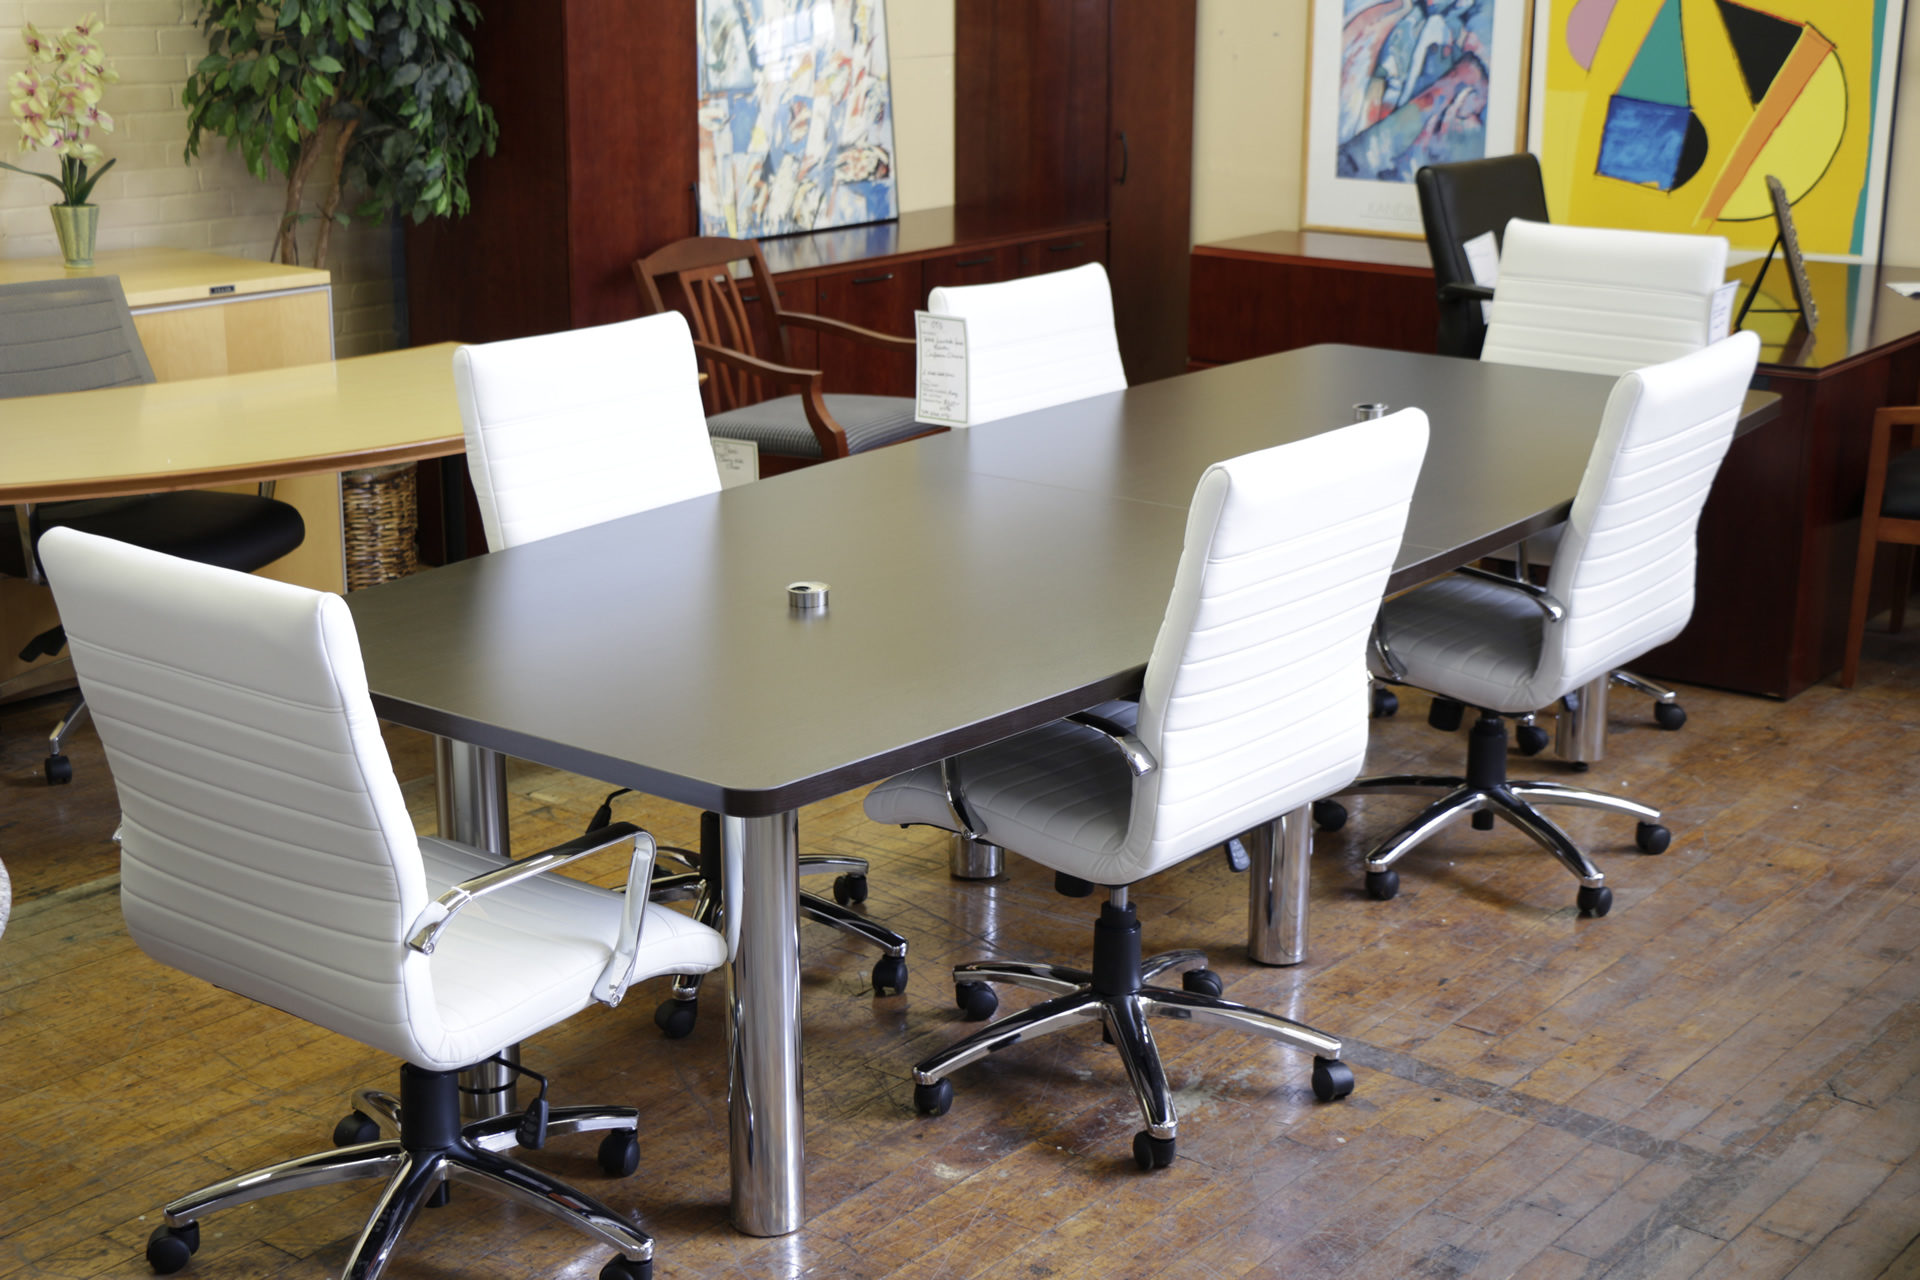 12′ Laminate Boat Shaped Espresso Conference Table with Chrome Legs